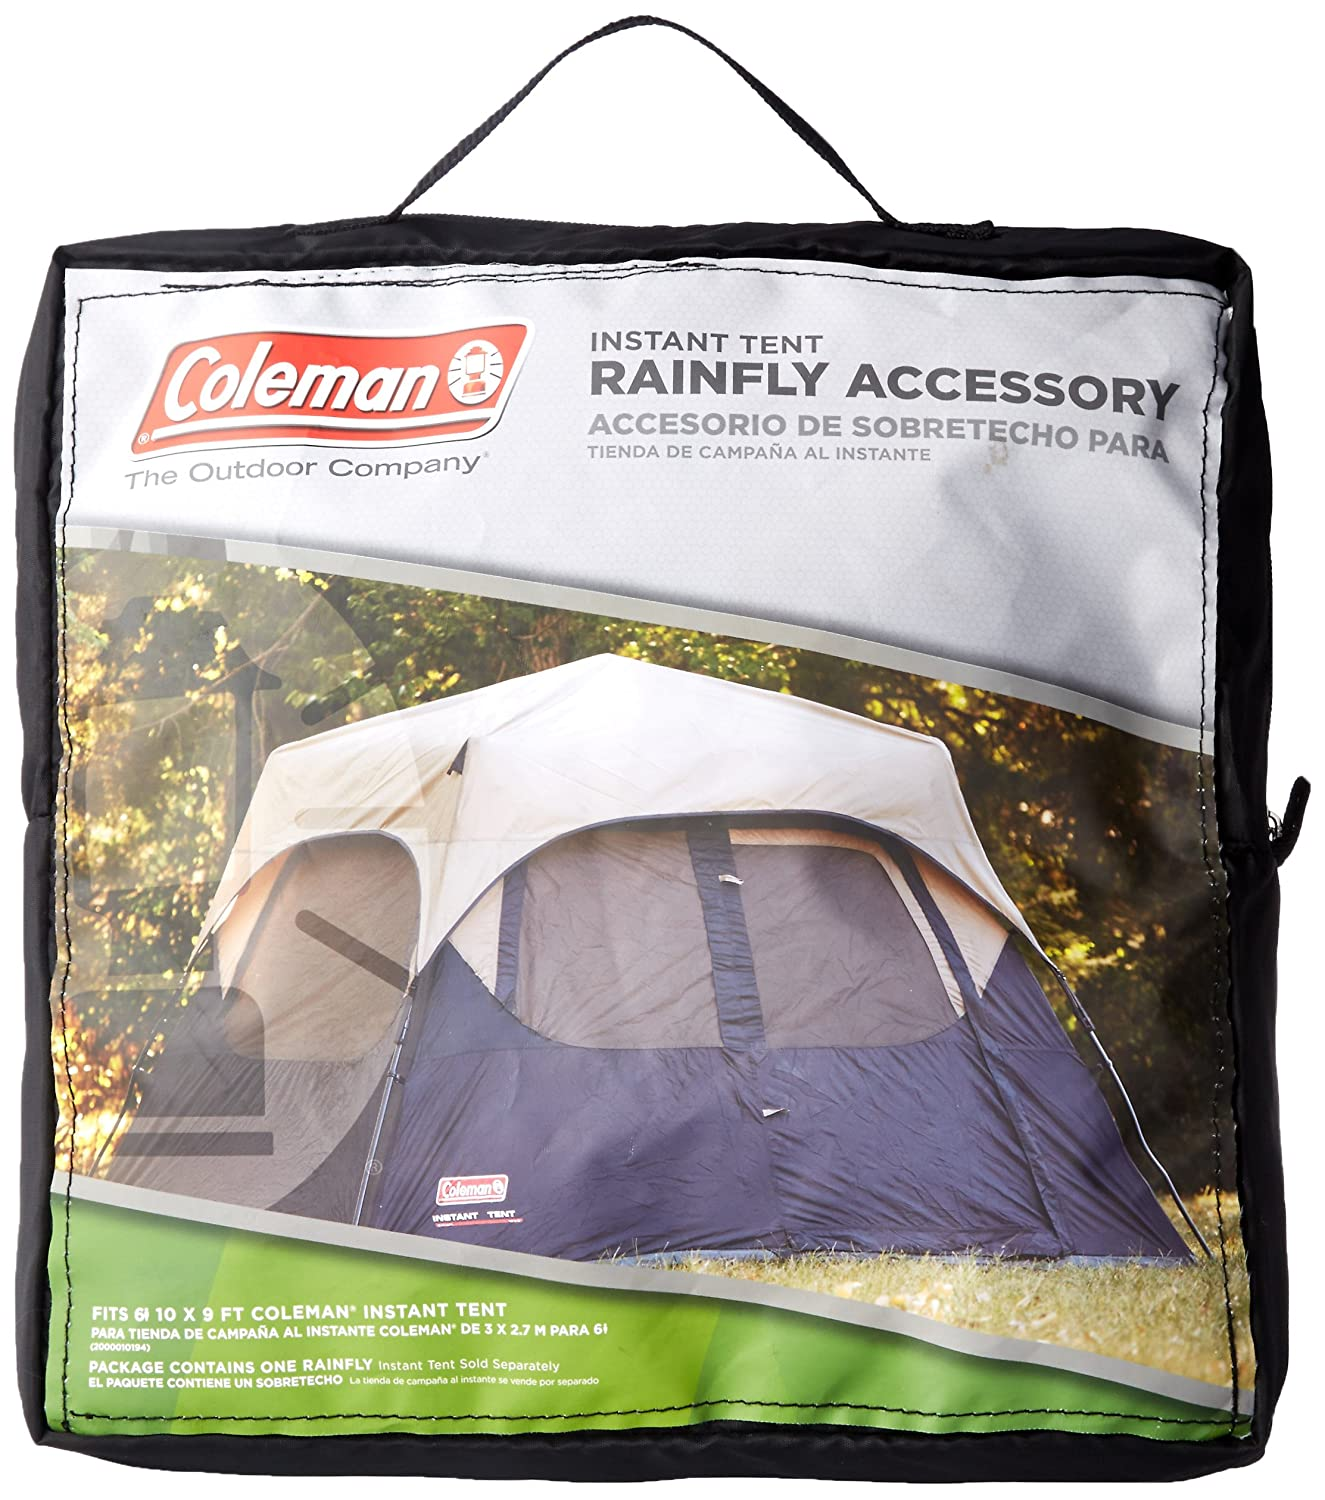 Amazon.com  Coleman 6-Person Instant Tent Rainfly Accessory  Tents For C&ing  Sports u0026 Outdoors  sc 1 st  Amazon.com : coleman tent bag replacement - memphite.com